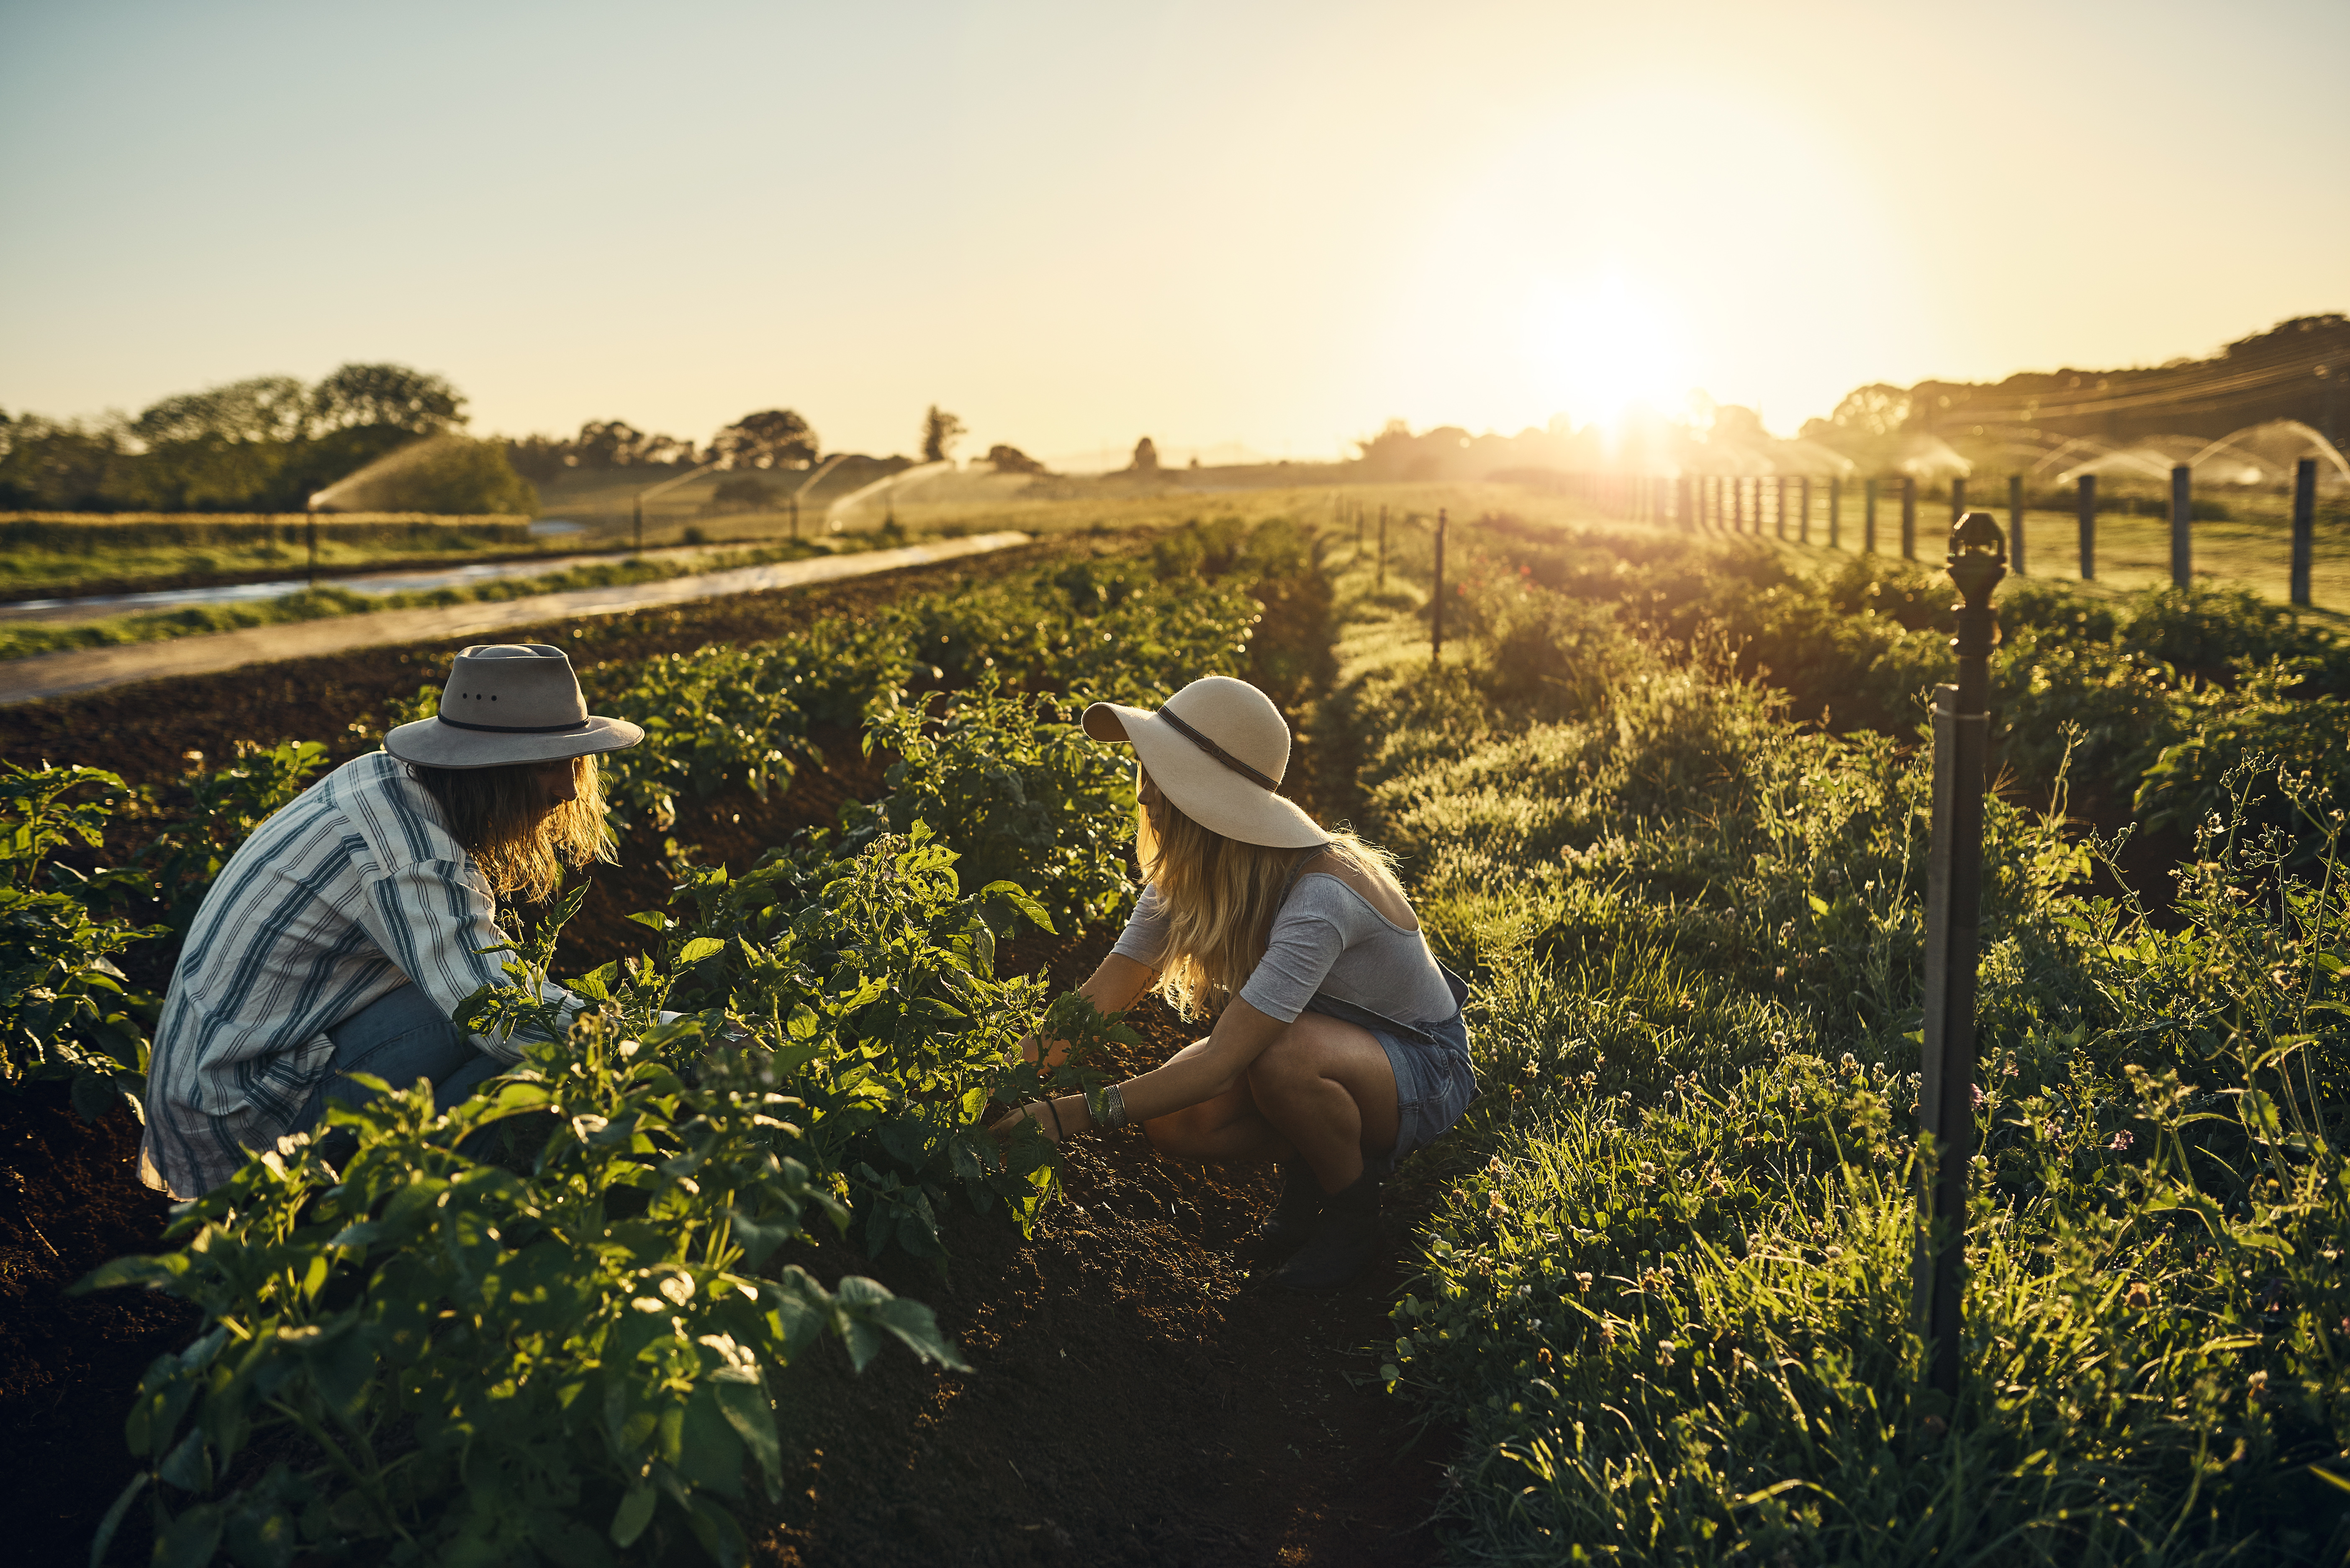 Shot of a group of farmers tending to their crop of herbs on a farm